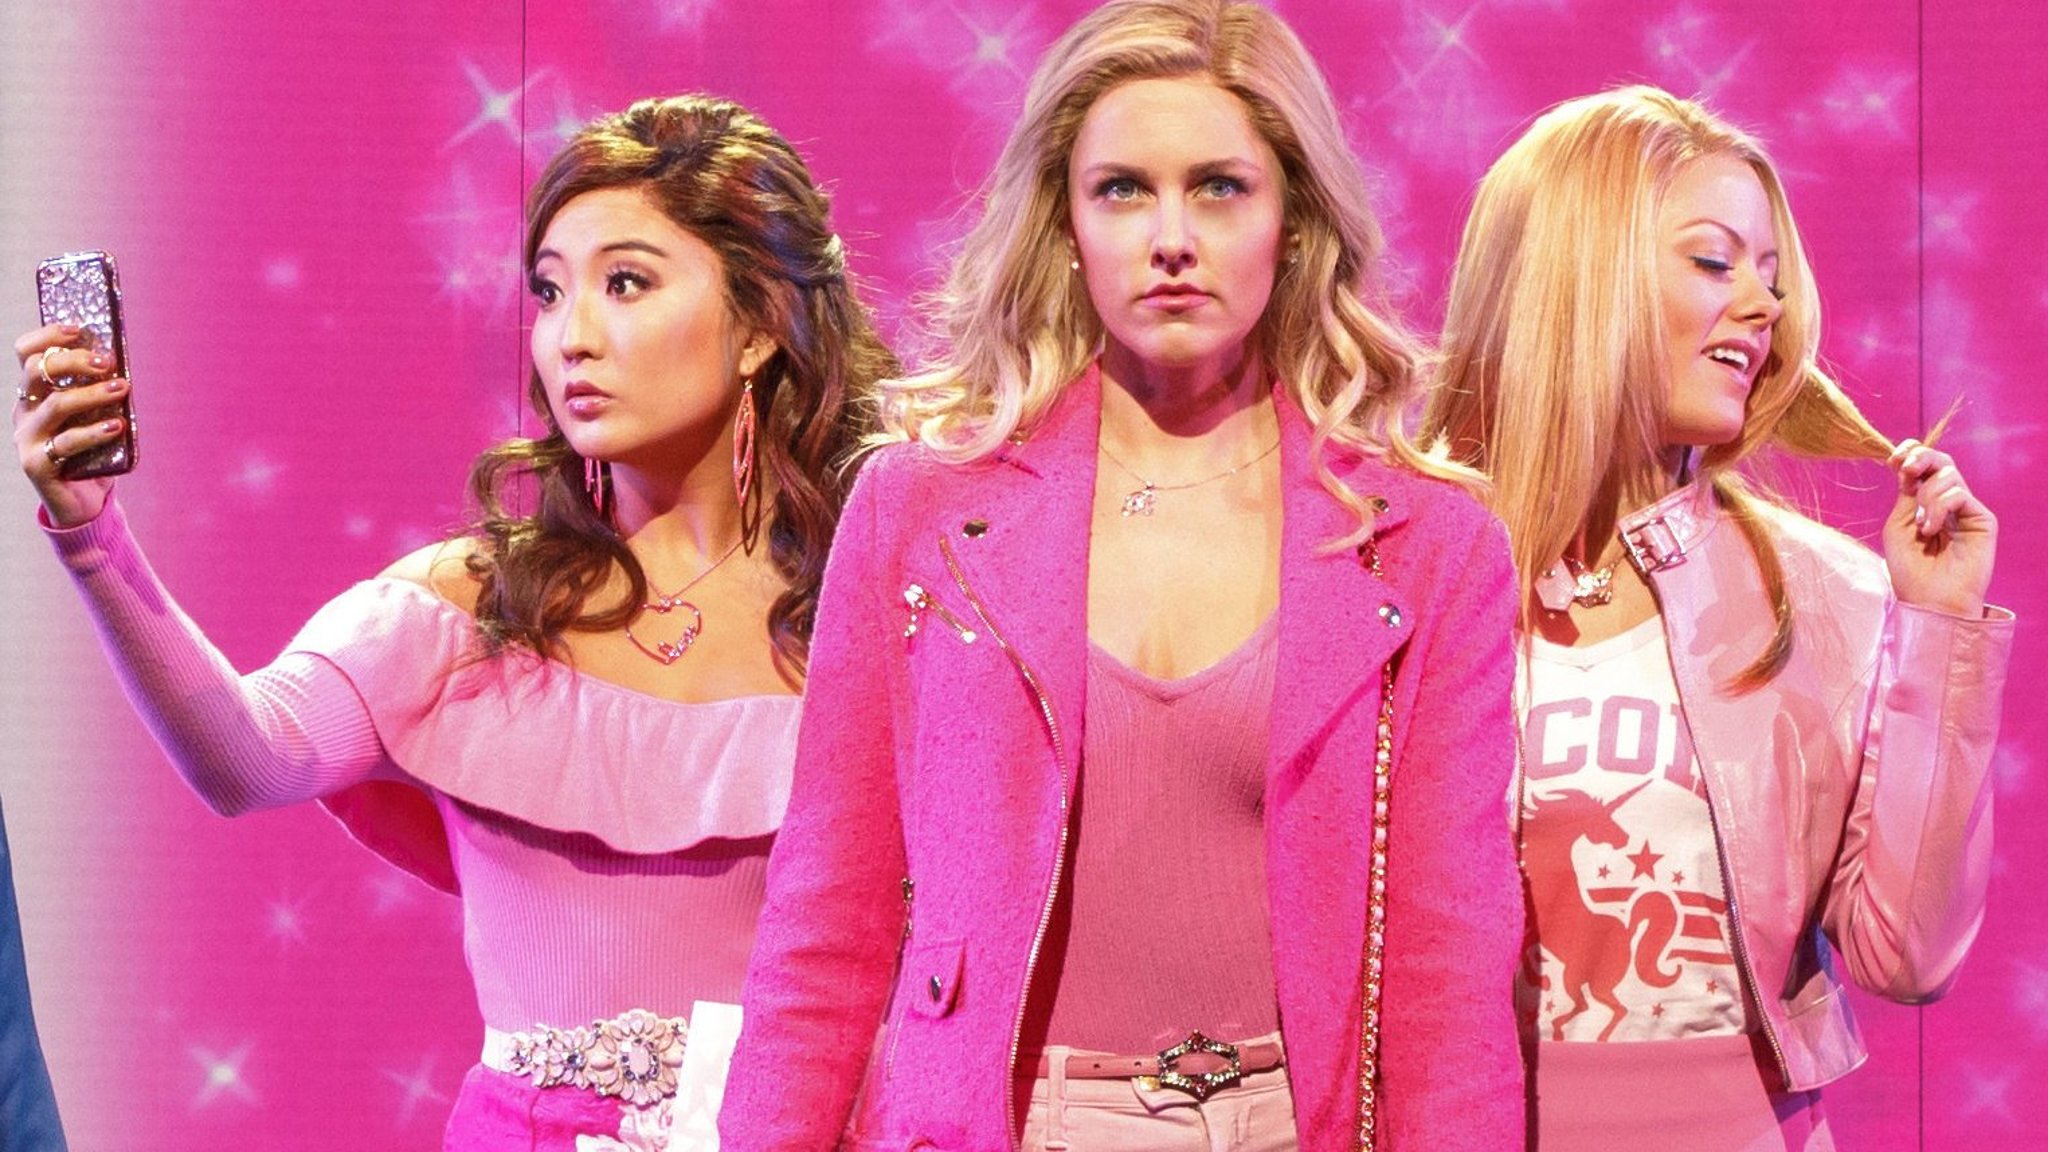 mean girls, august wilson theatre, new york — a deficit of nastiness